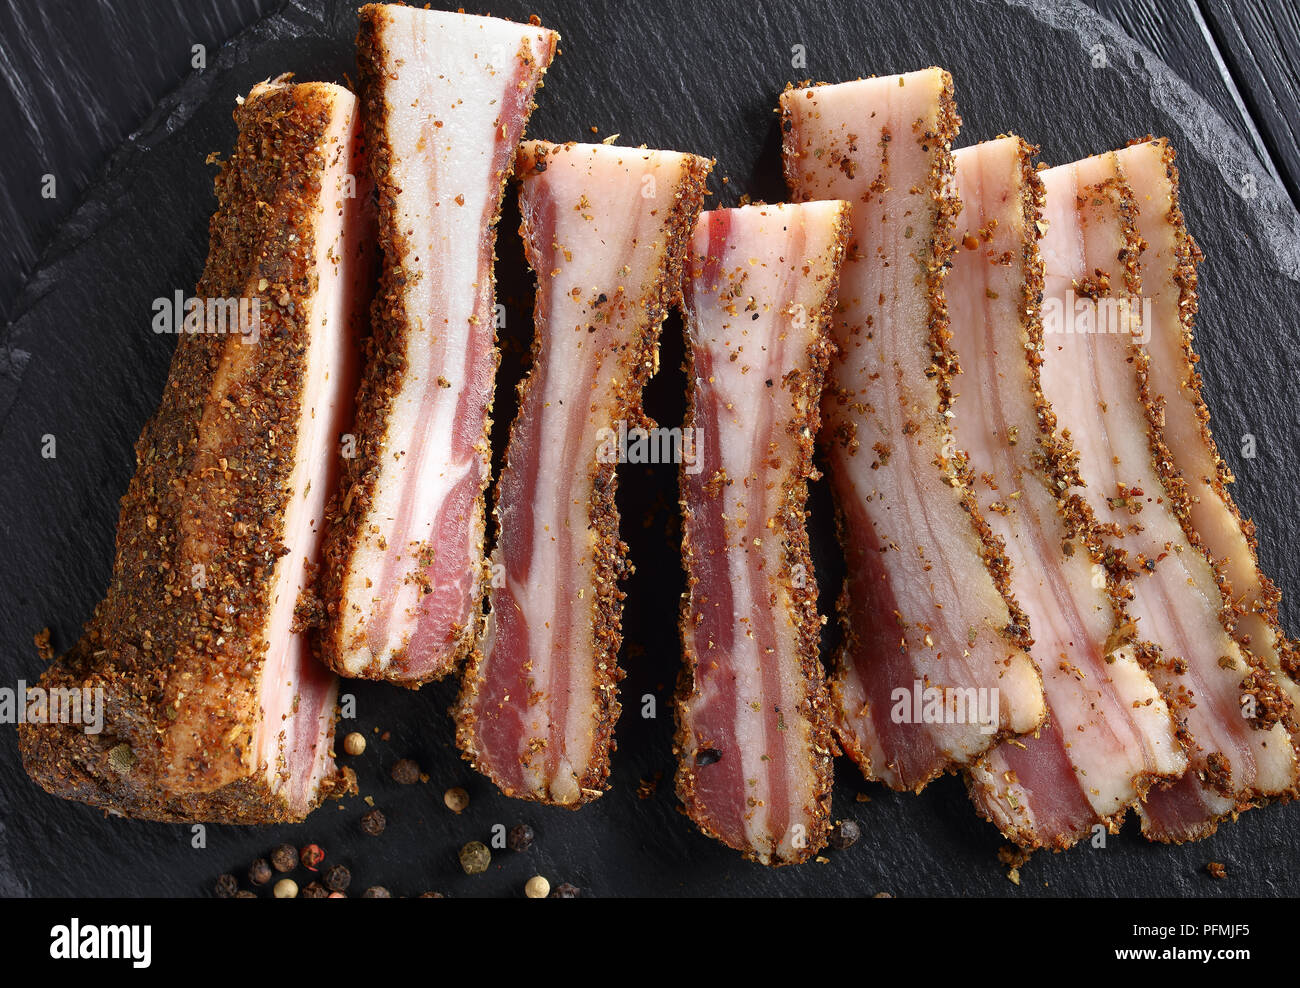 close-up of spicy smoked speck cut in slices on black round stone plate on wooden table, horizontal view from above Stock Photo